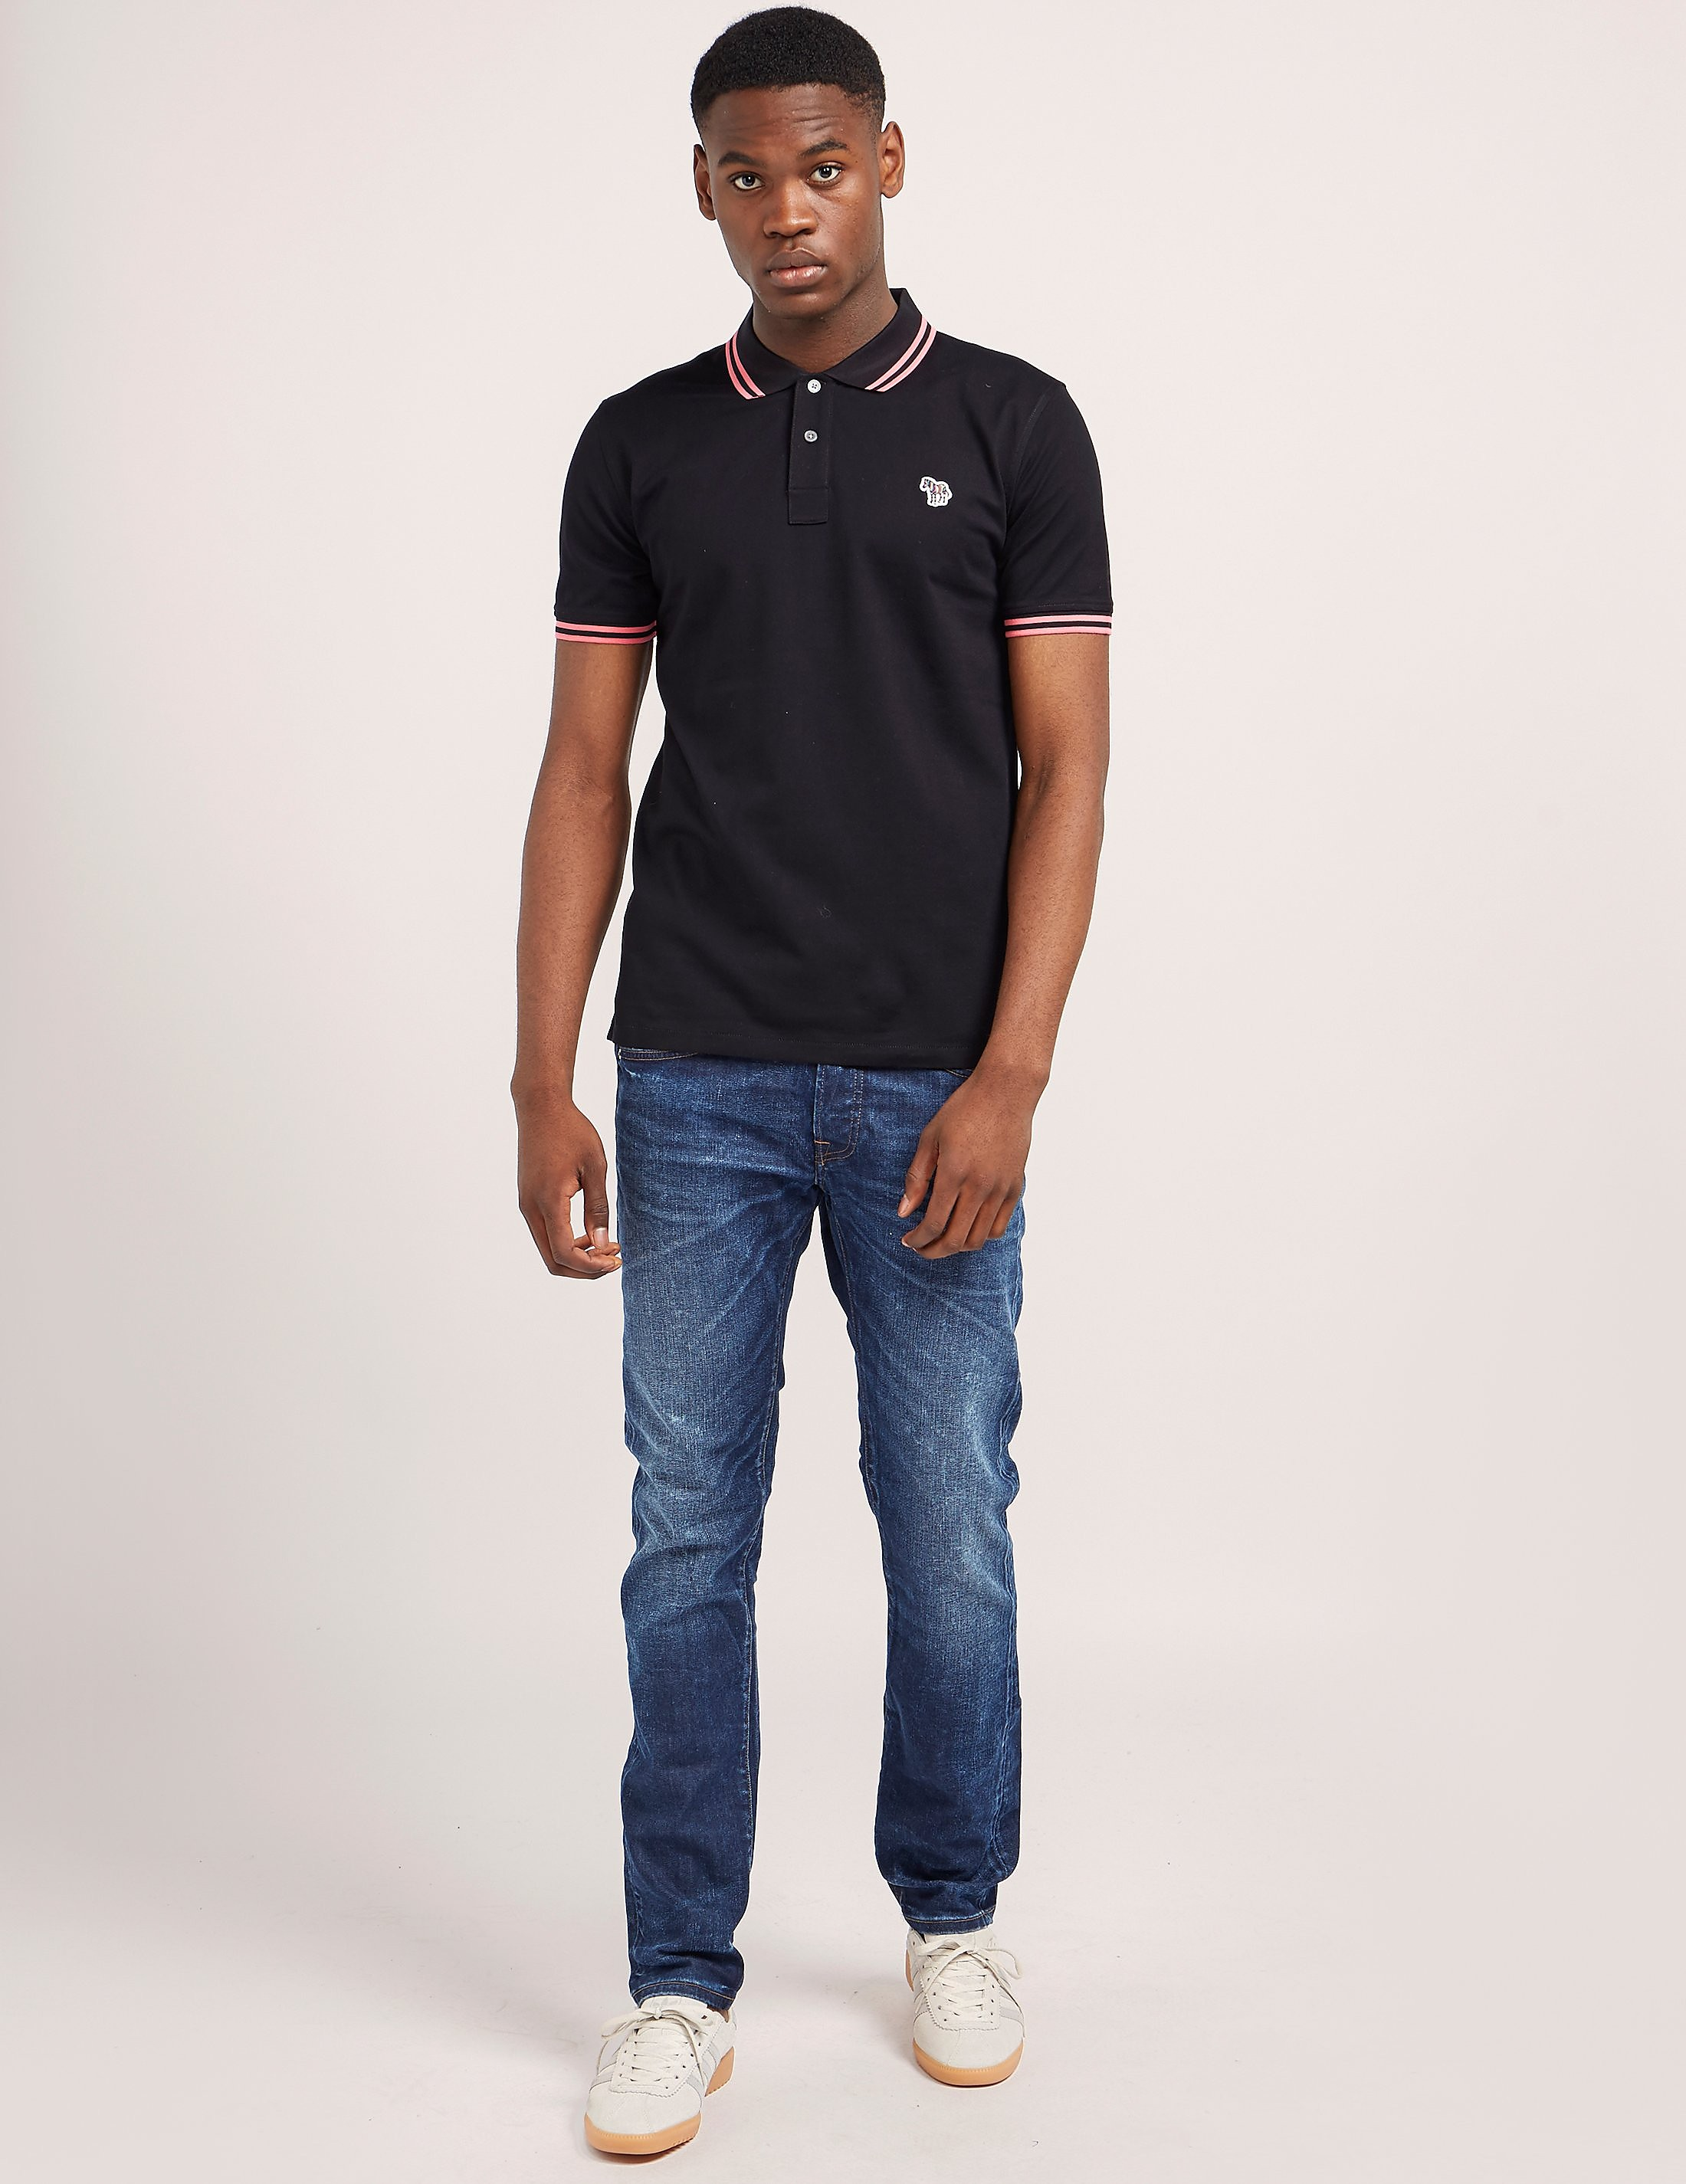 Paul Smith Tipped Short Sleeve Polo Shirt